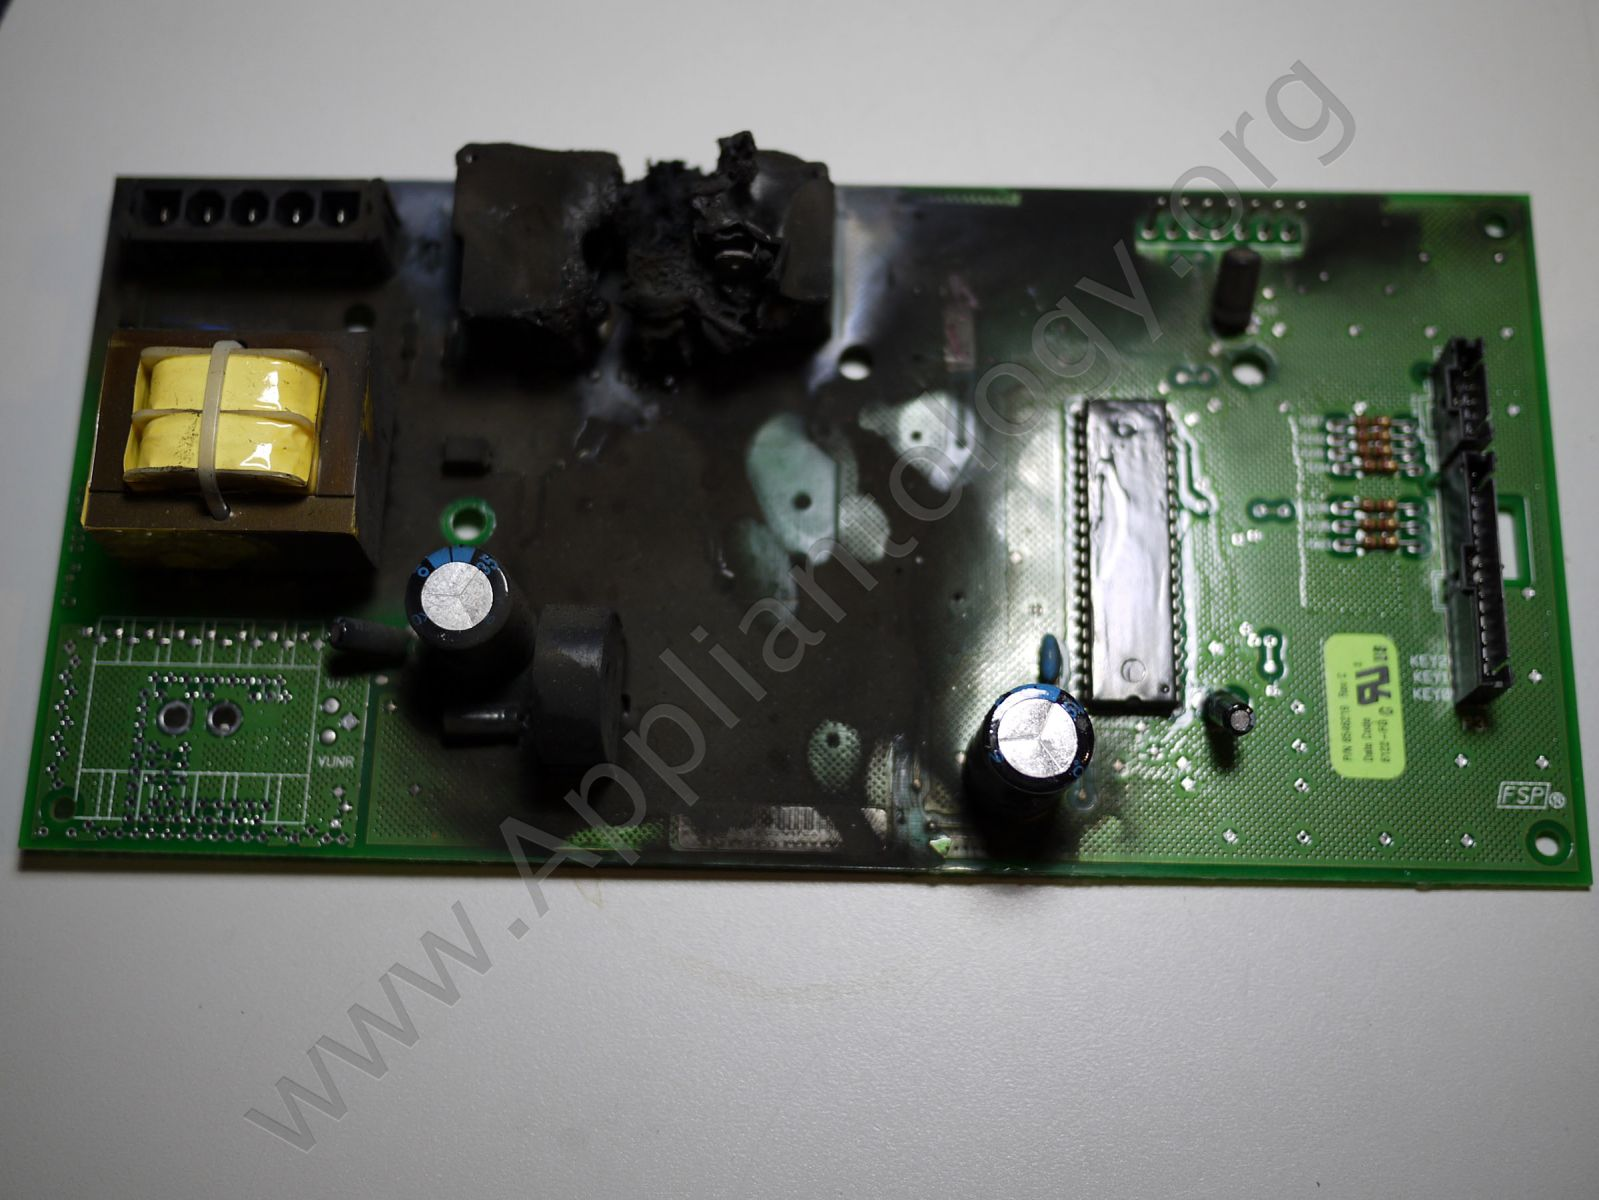 Smoked Whirlpool Duet Dryer Control Board